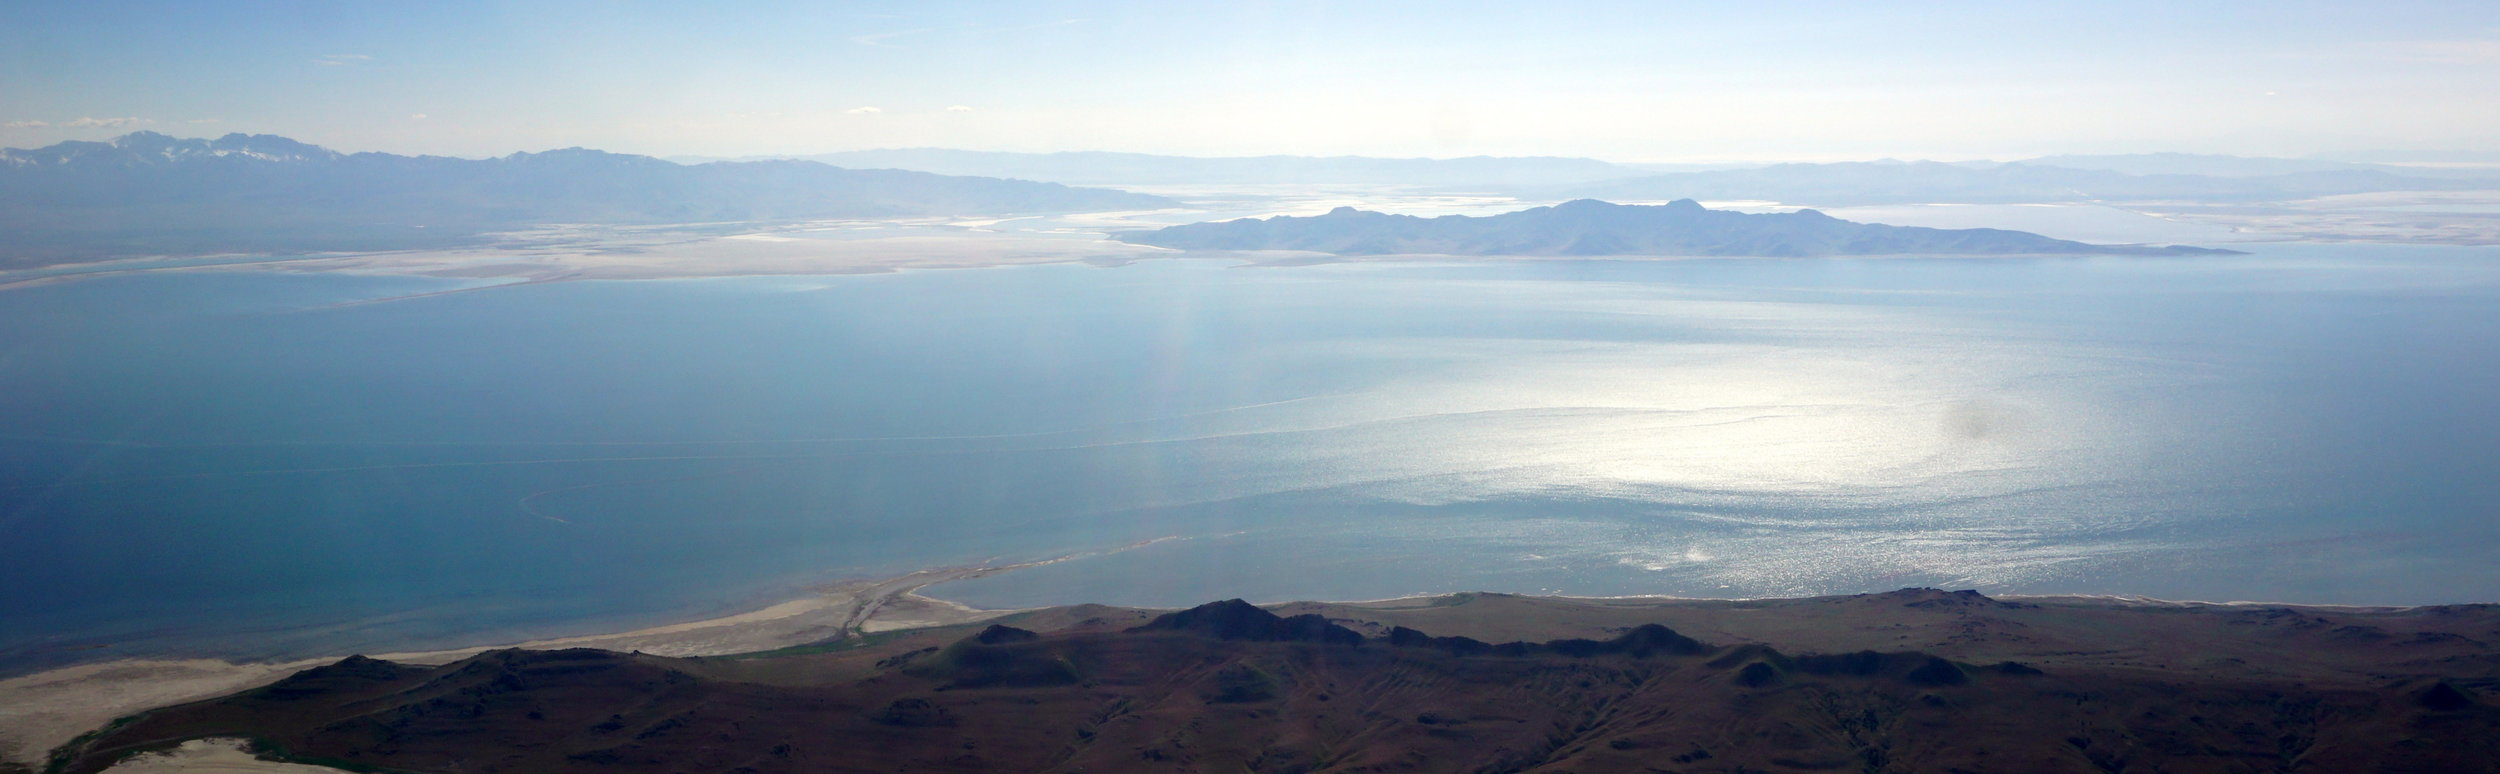 The Great Salt Lake - final approach